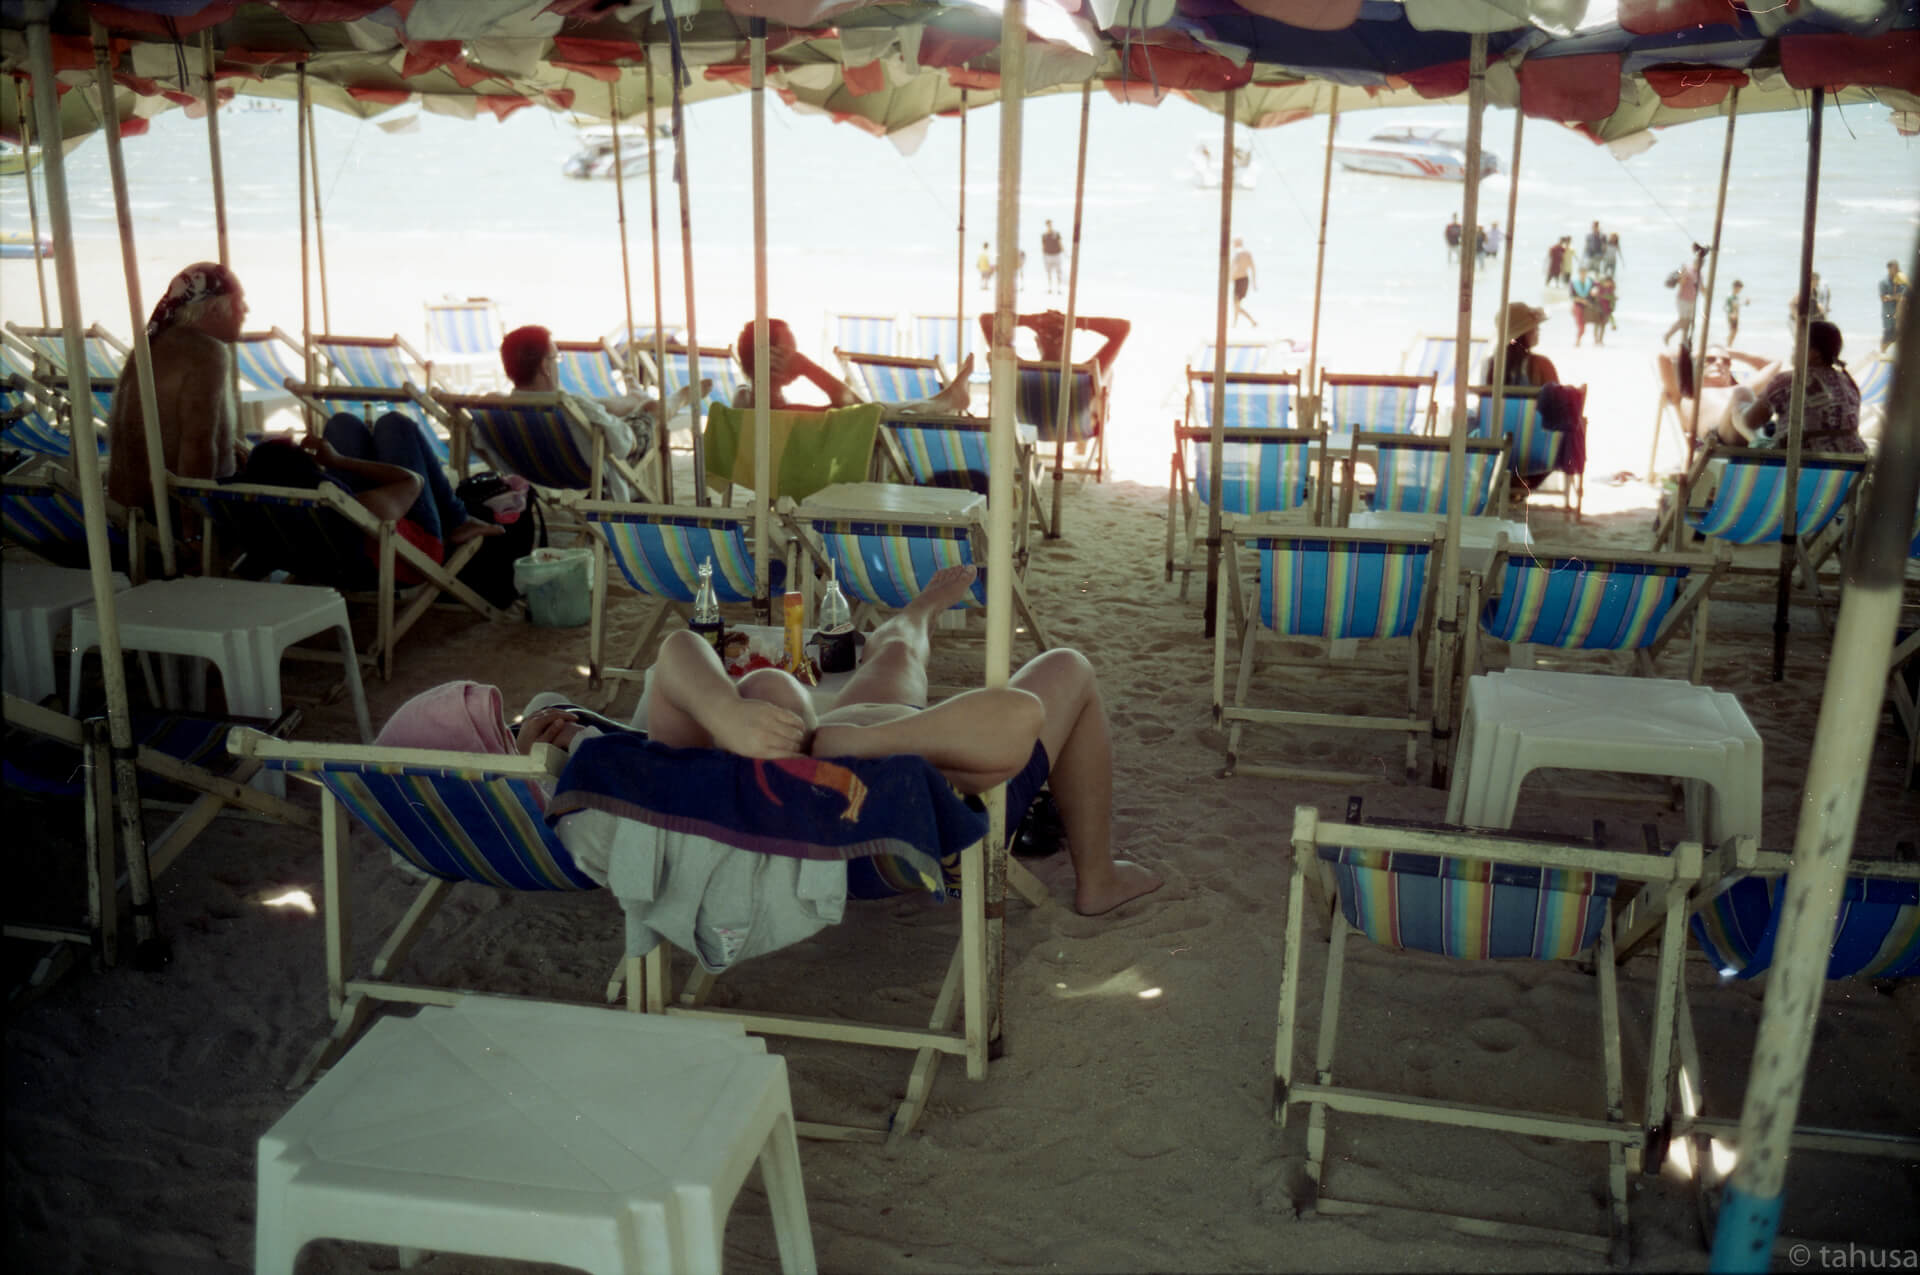 so-hot-but-chill-on-beach-with-cold-drinks-Pattaya-Thailand-using-film-leica-m2-summicron-35mm-f2-v1-8elements-hk-cinestill-Cine-movie-film-analog-c41-unique-color-film-review-street-streetsnap-streetphotography-50D-iso50